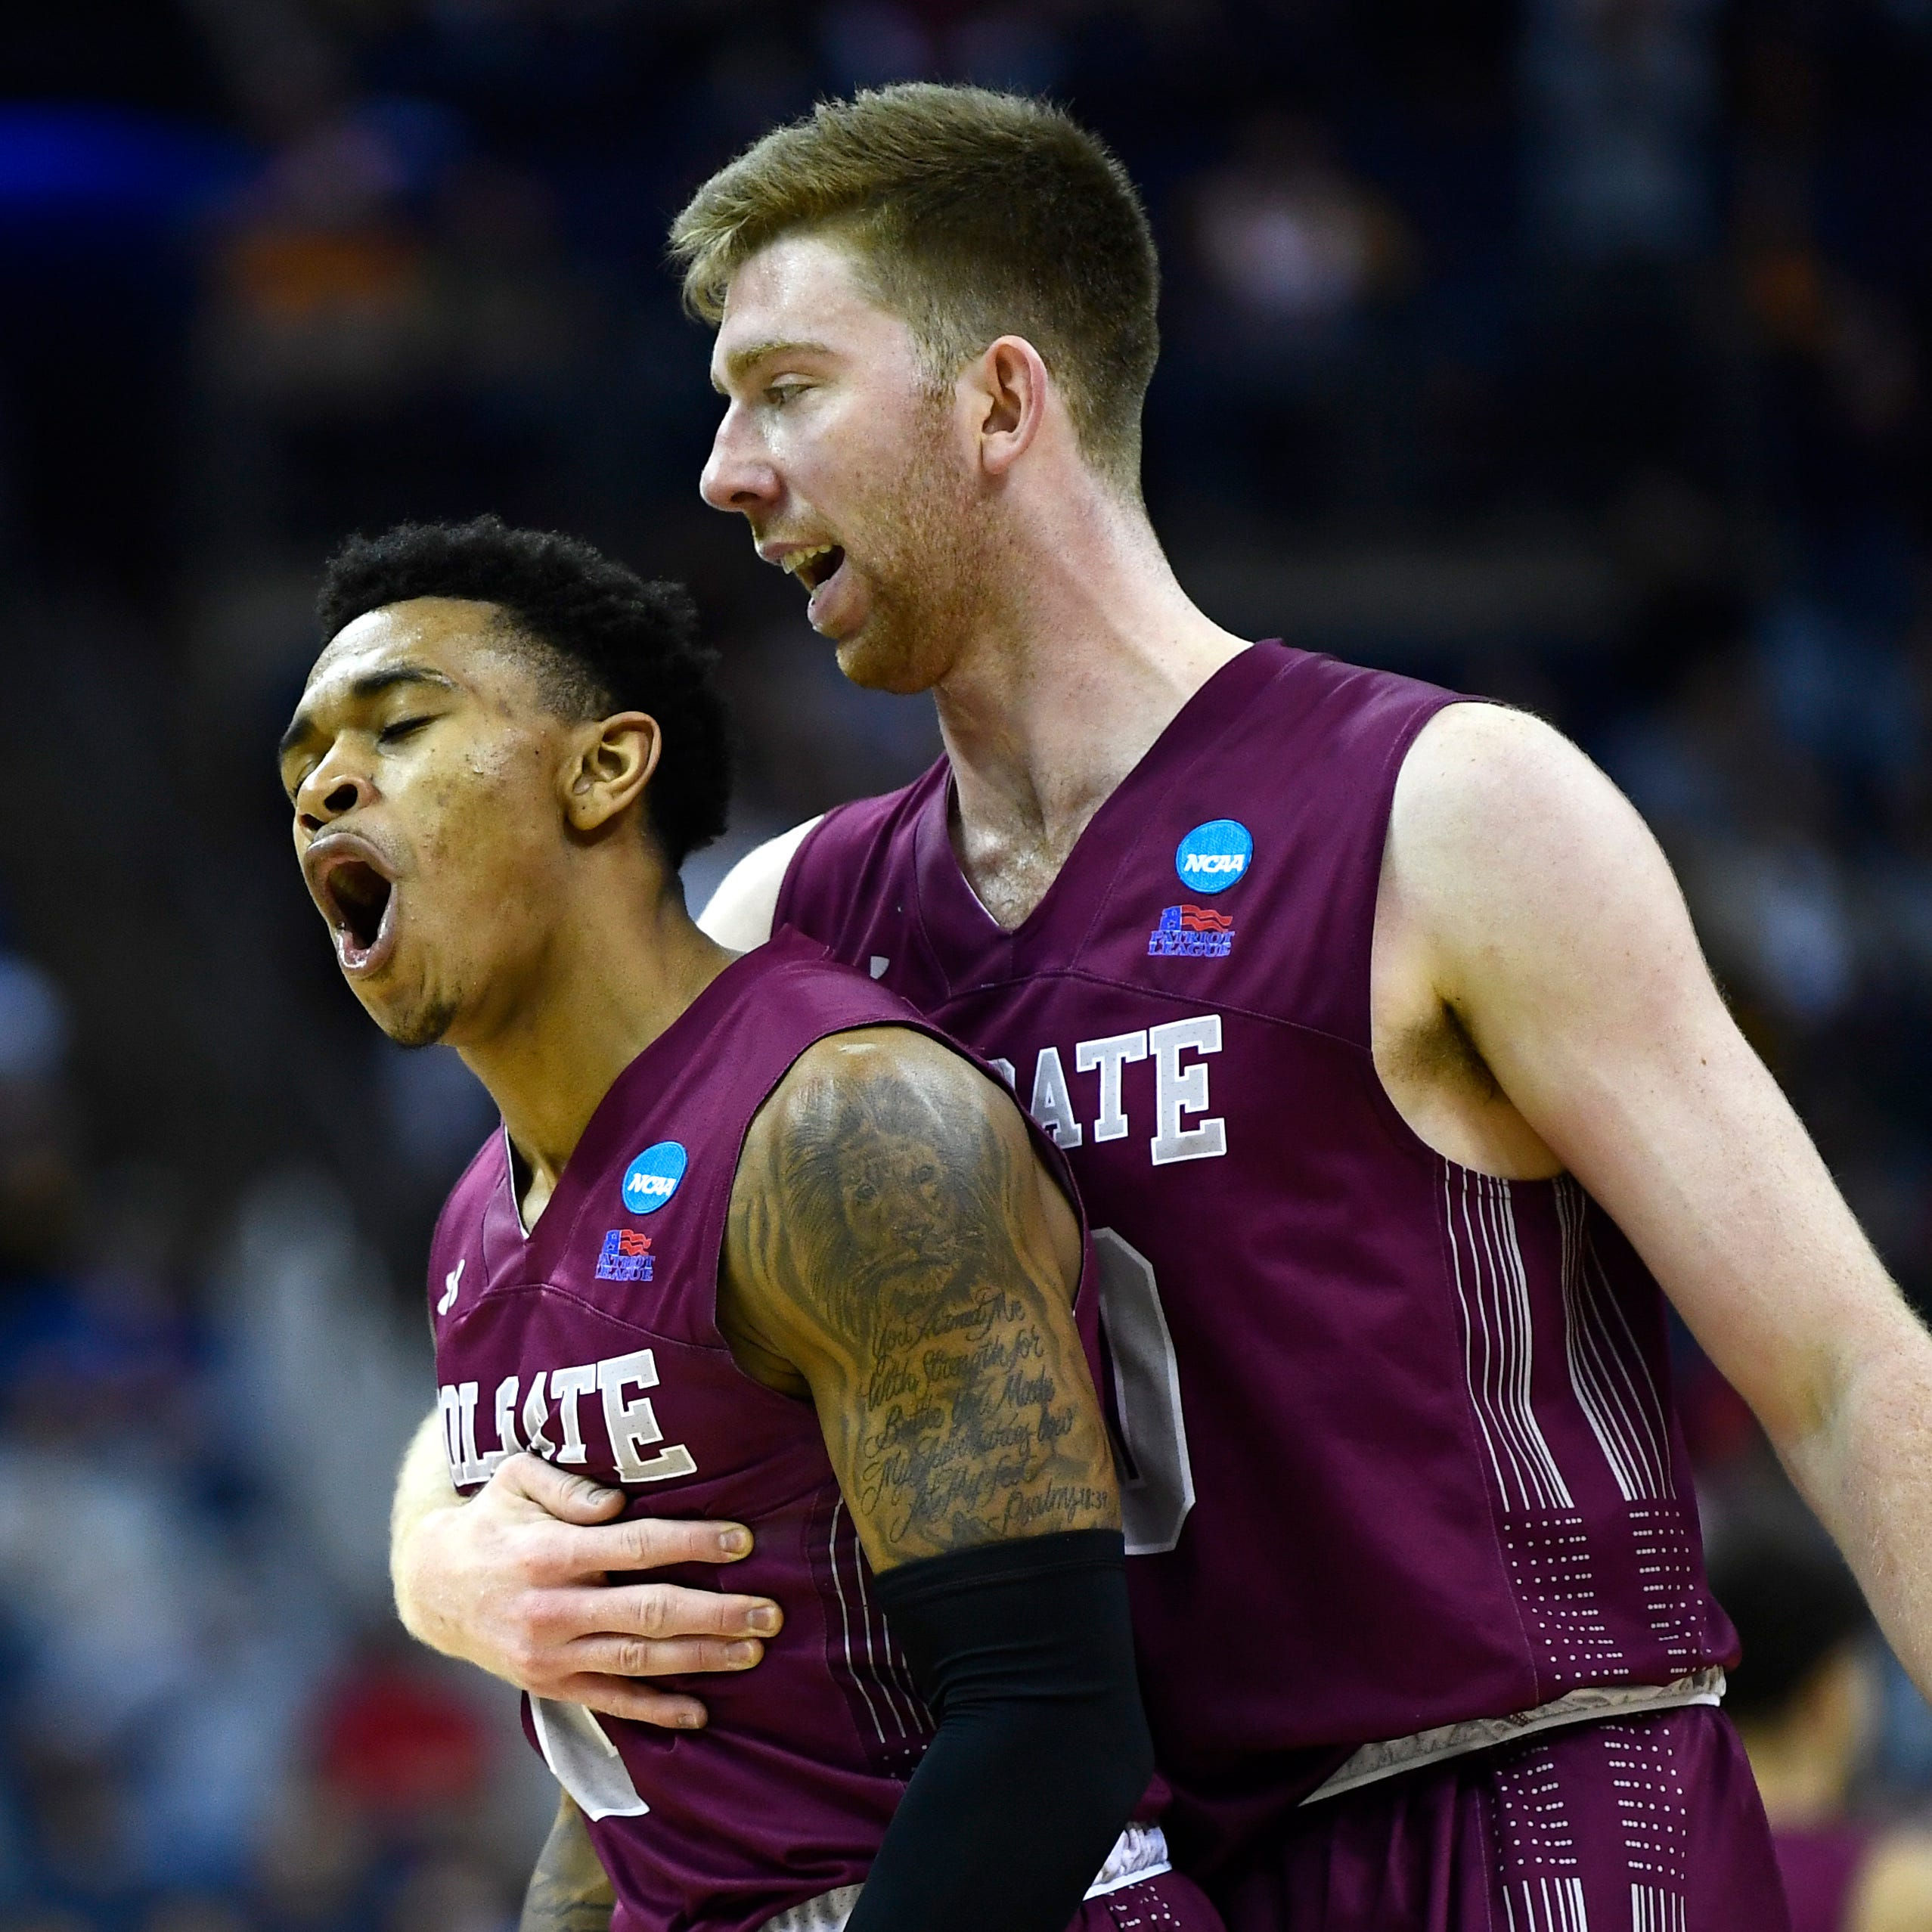 McCurdy: Colgate earns its one shining moment in NCAA Tournament